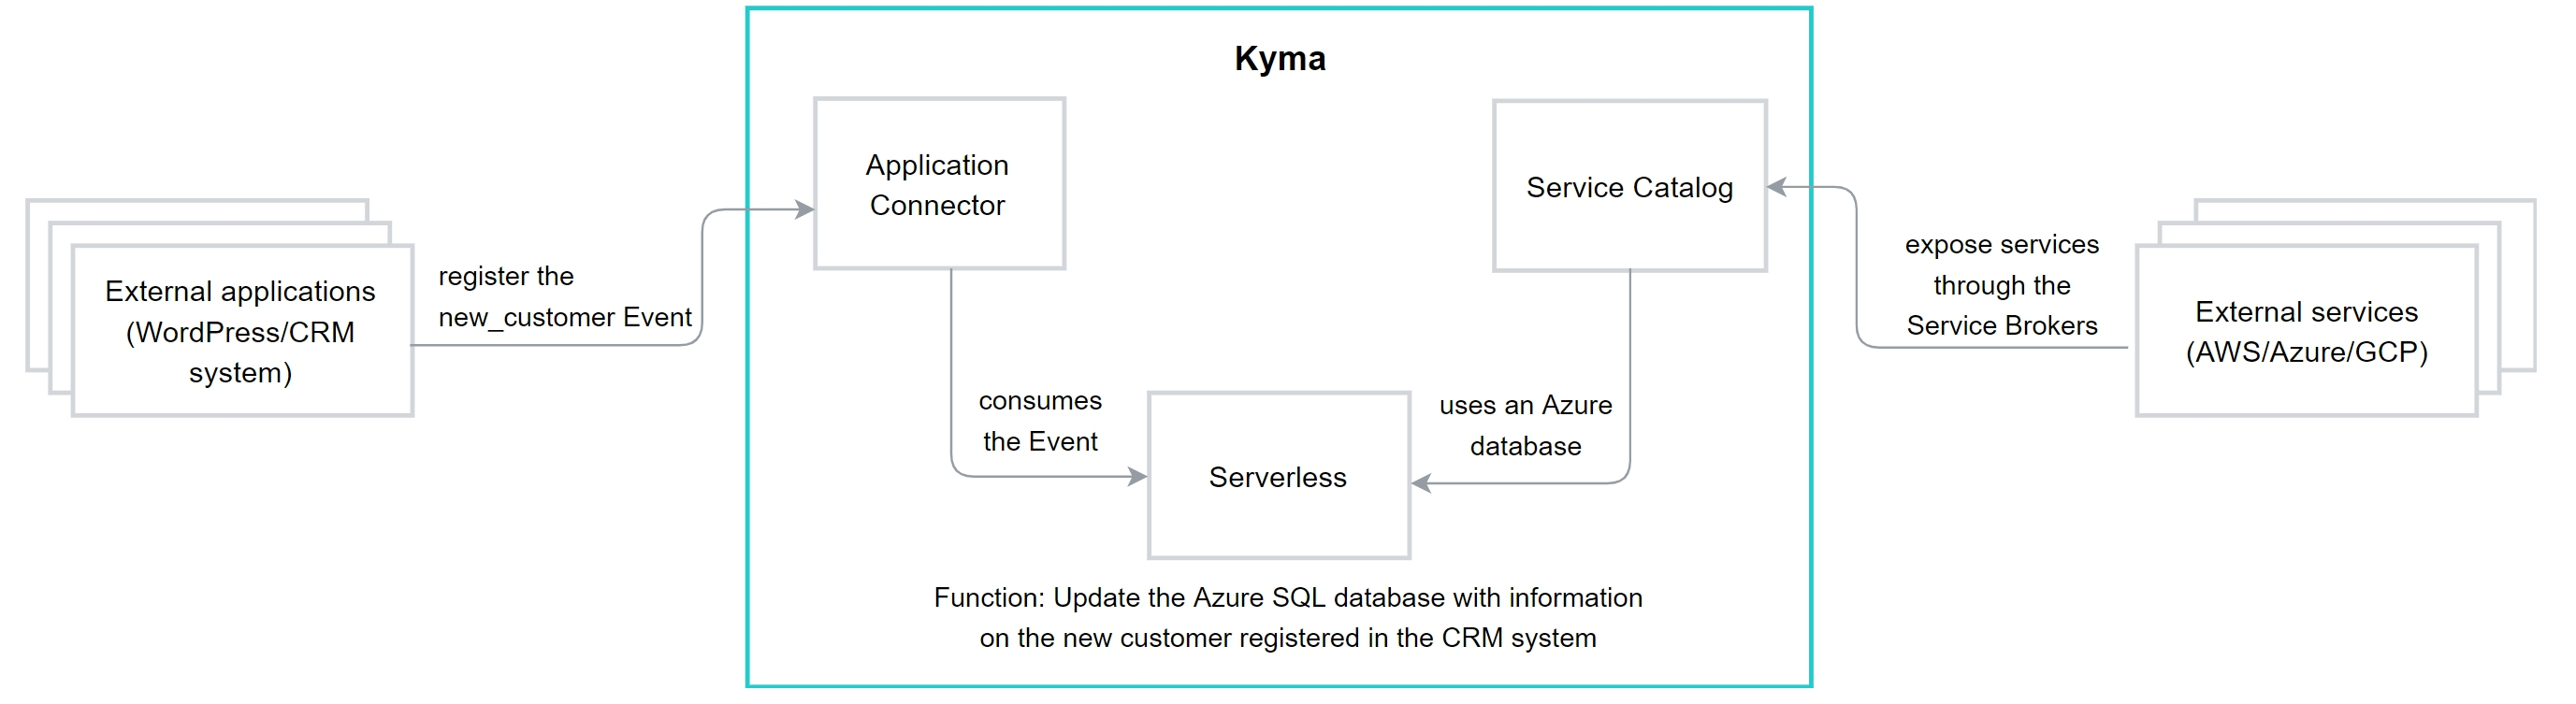 Kyma components integrating with external applications